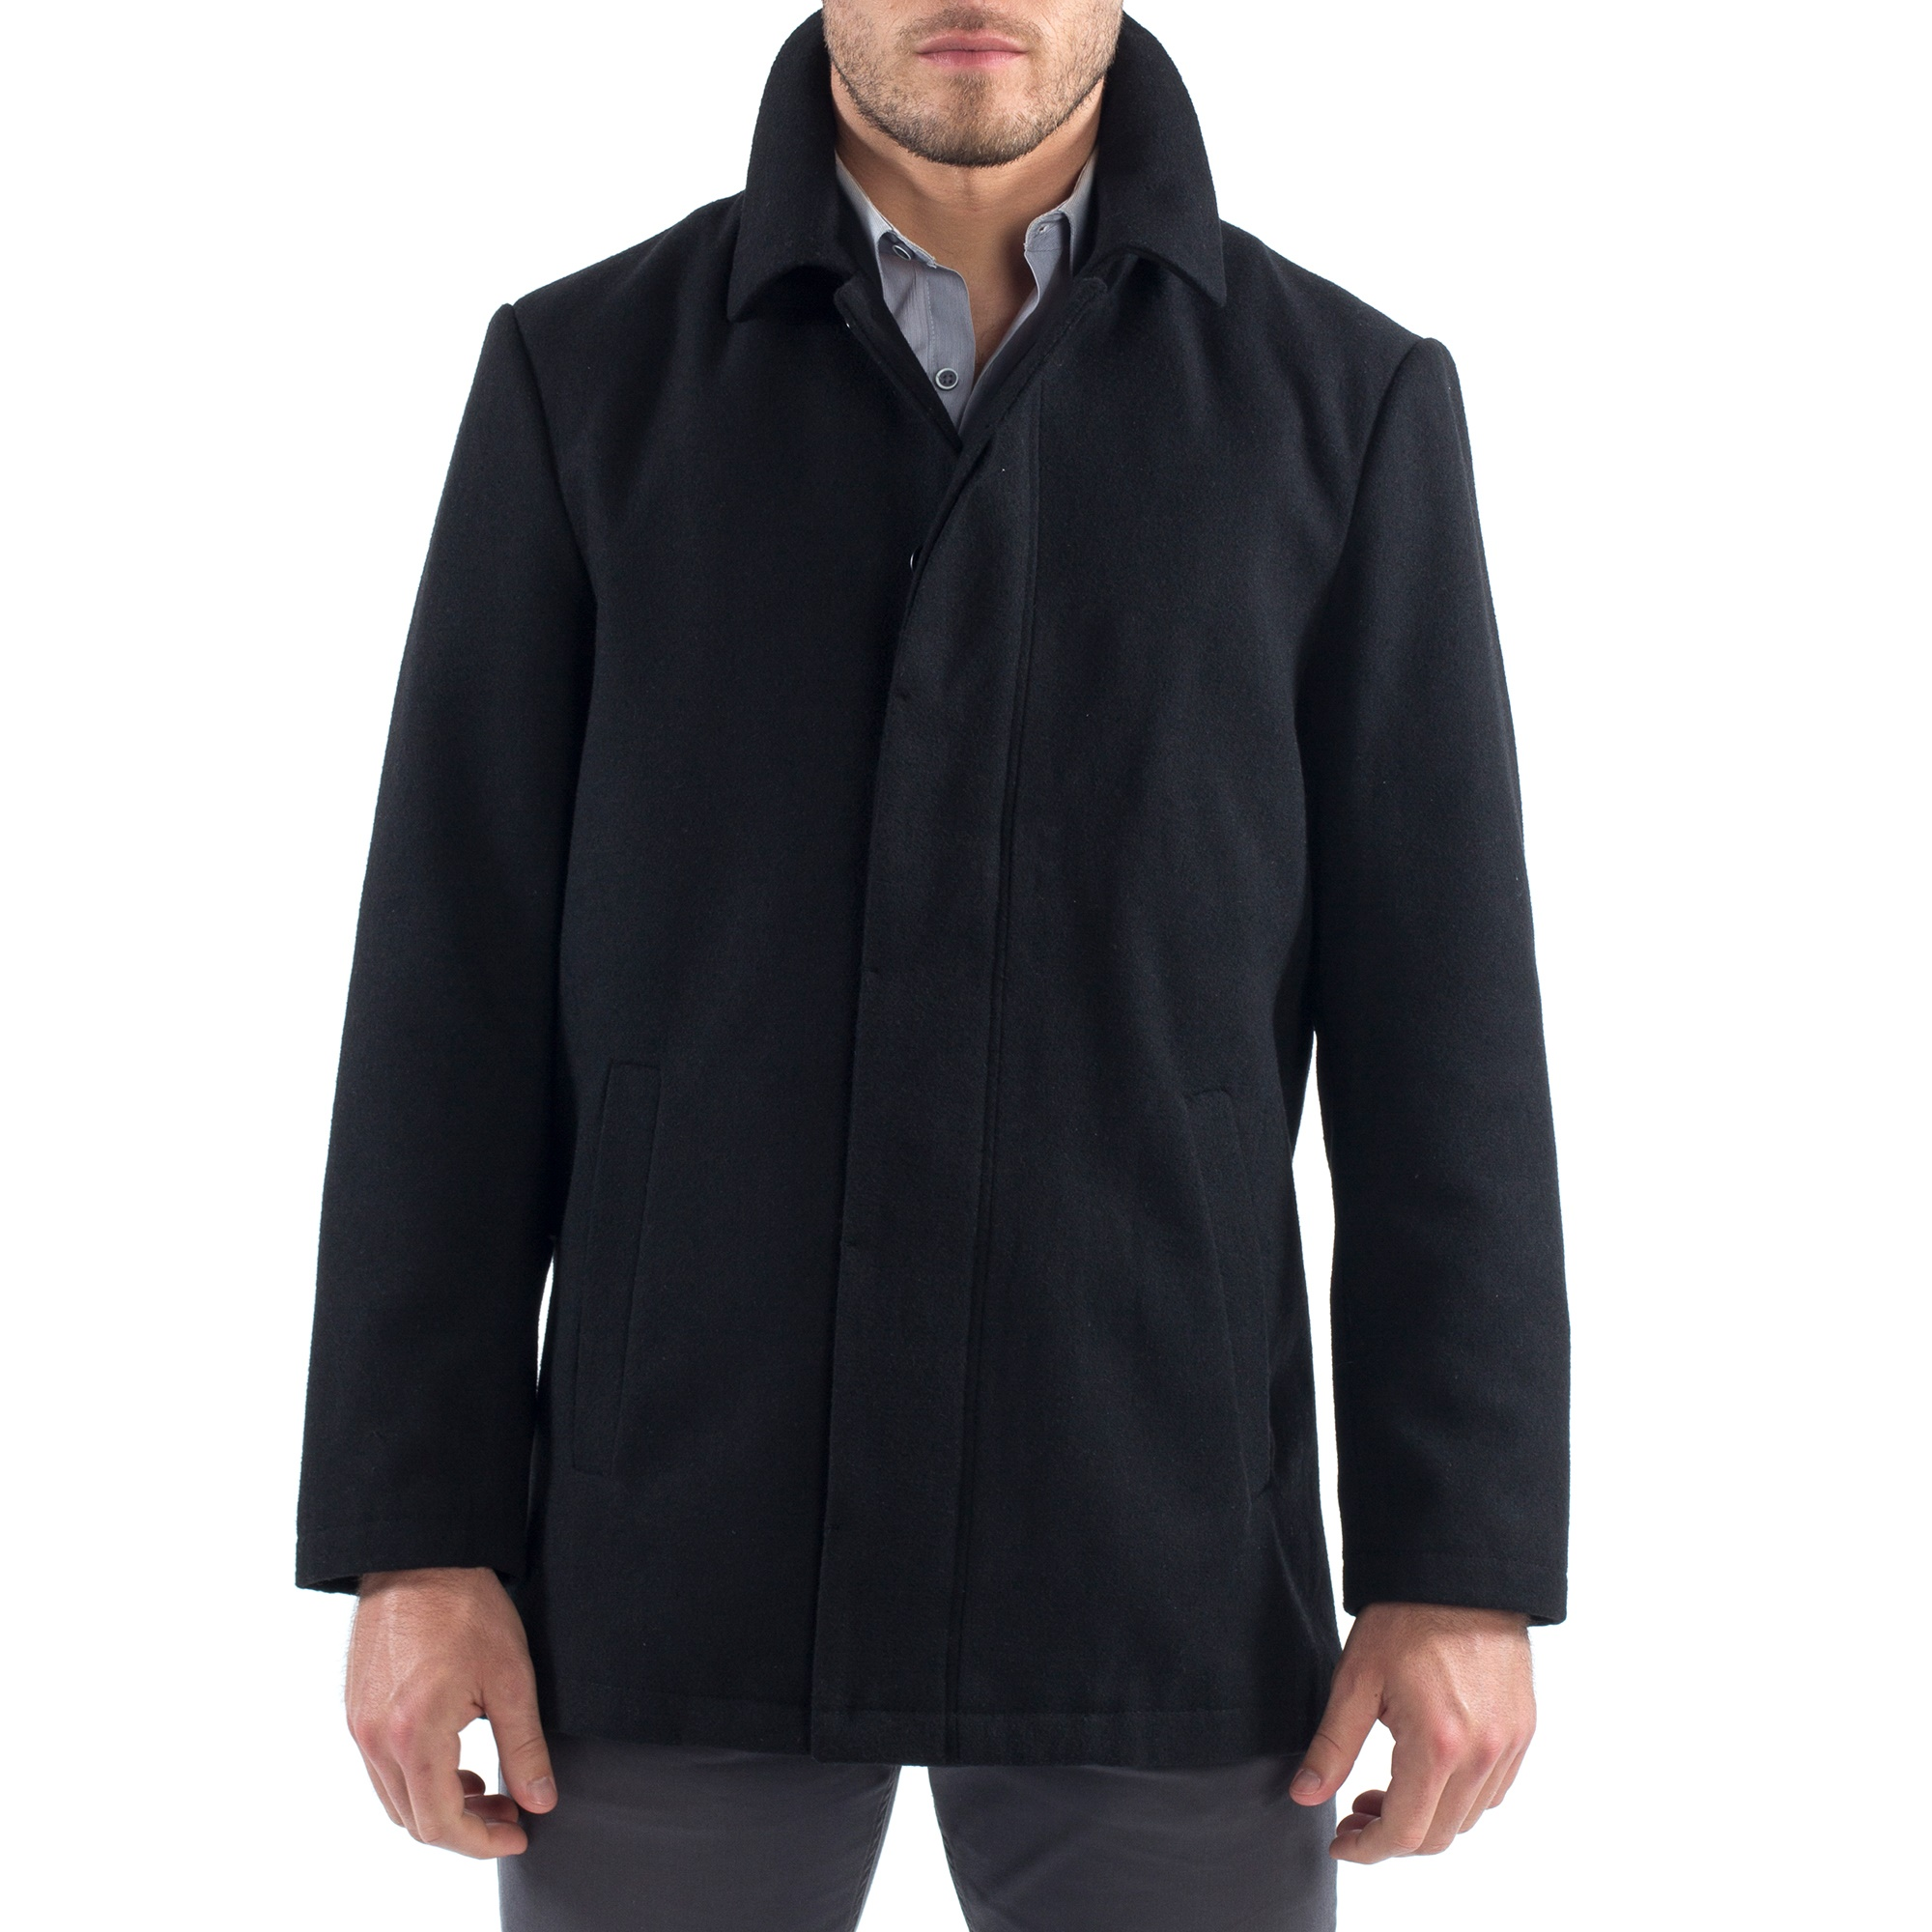 Alpine-Swiss-Vance-Mens-Jacket-Wool-Blend-Button-Up-Coat-Dress-Car-Coat-Blazer thumbnail 18